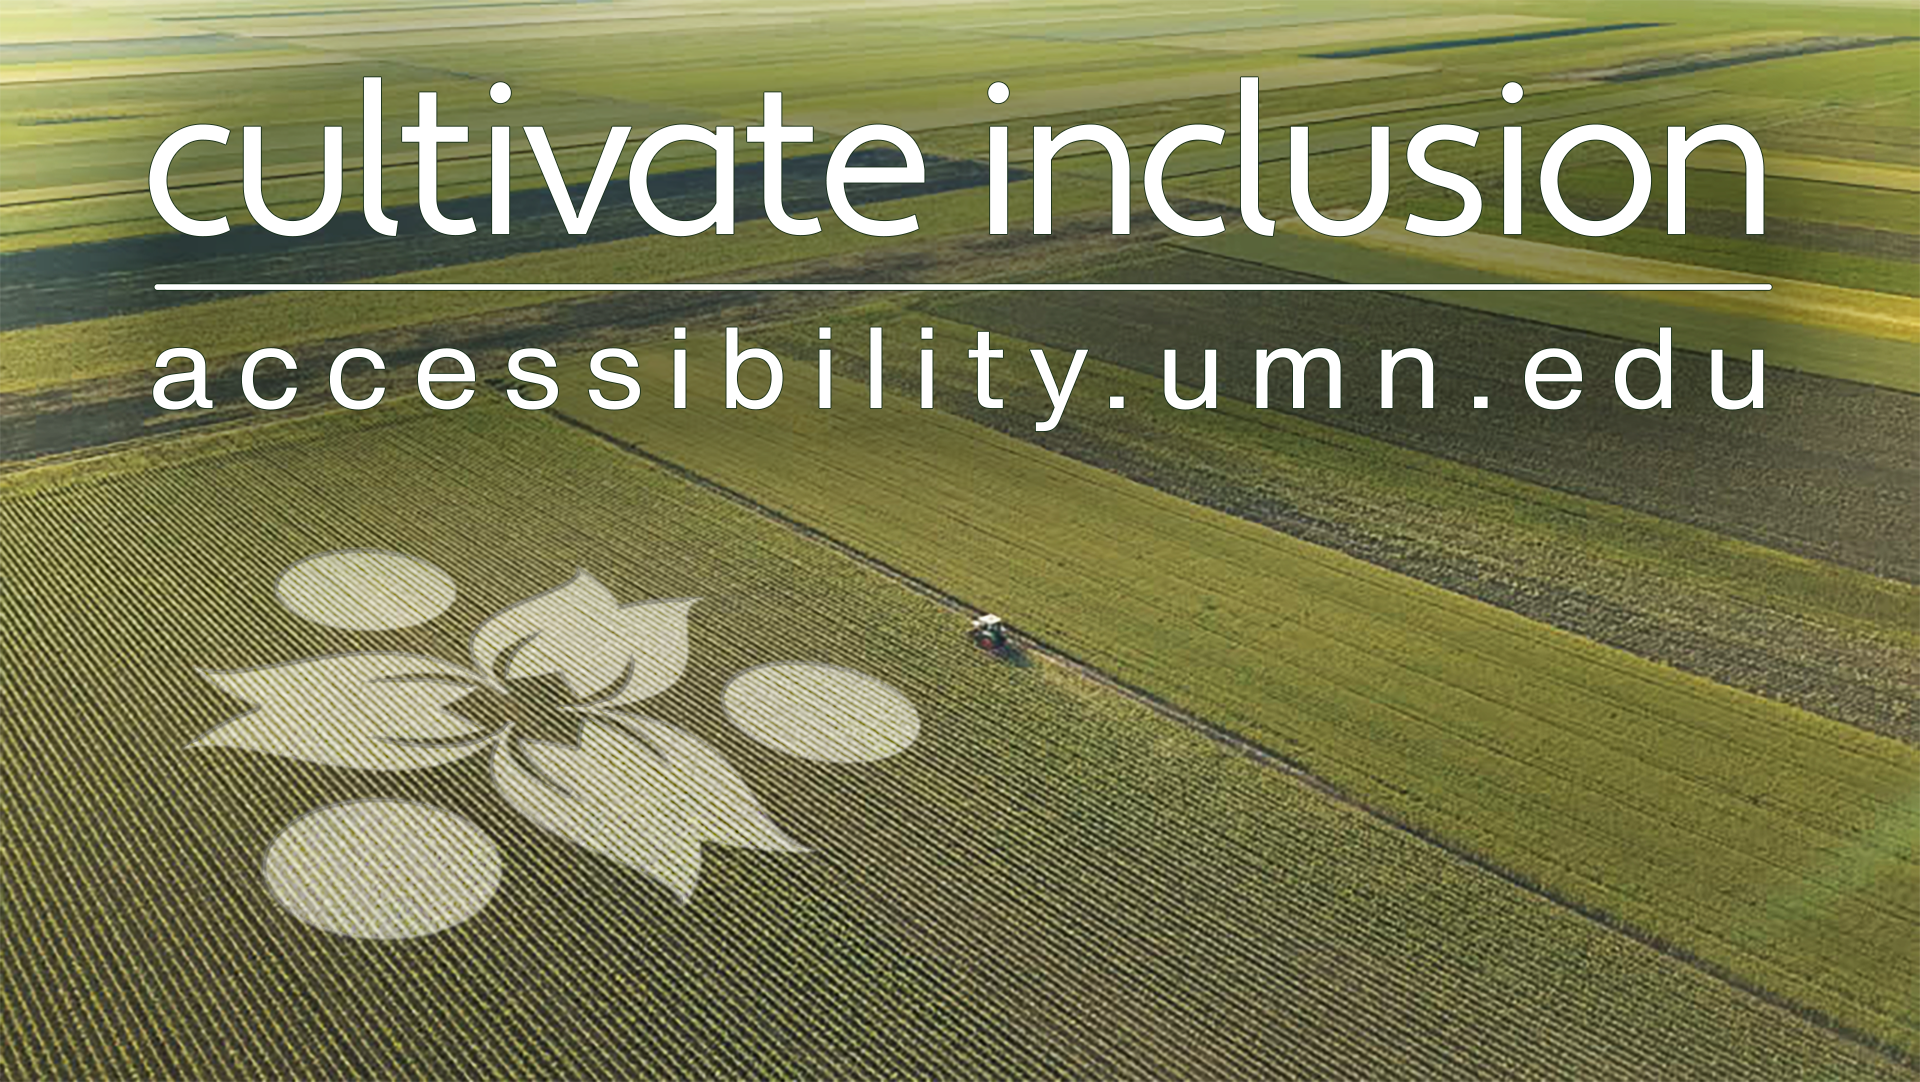 "Aerial view of a farm field with crop art shaped like the cultivate inclusion logo and the url, ""accessibility.umn.edu"""